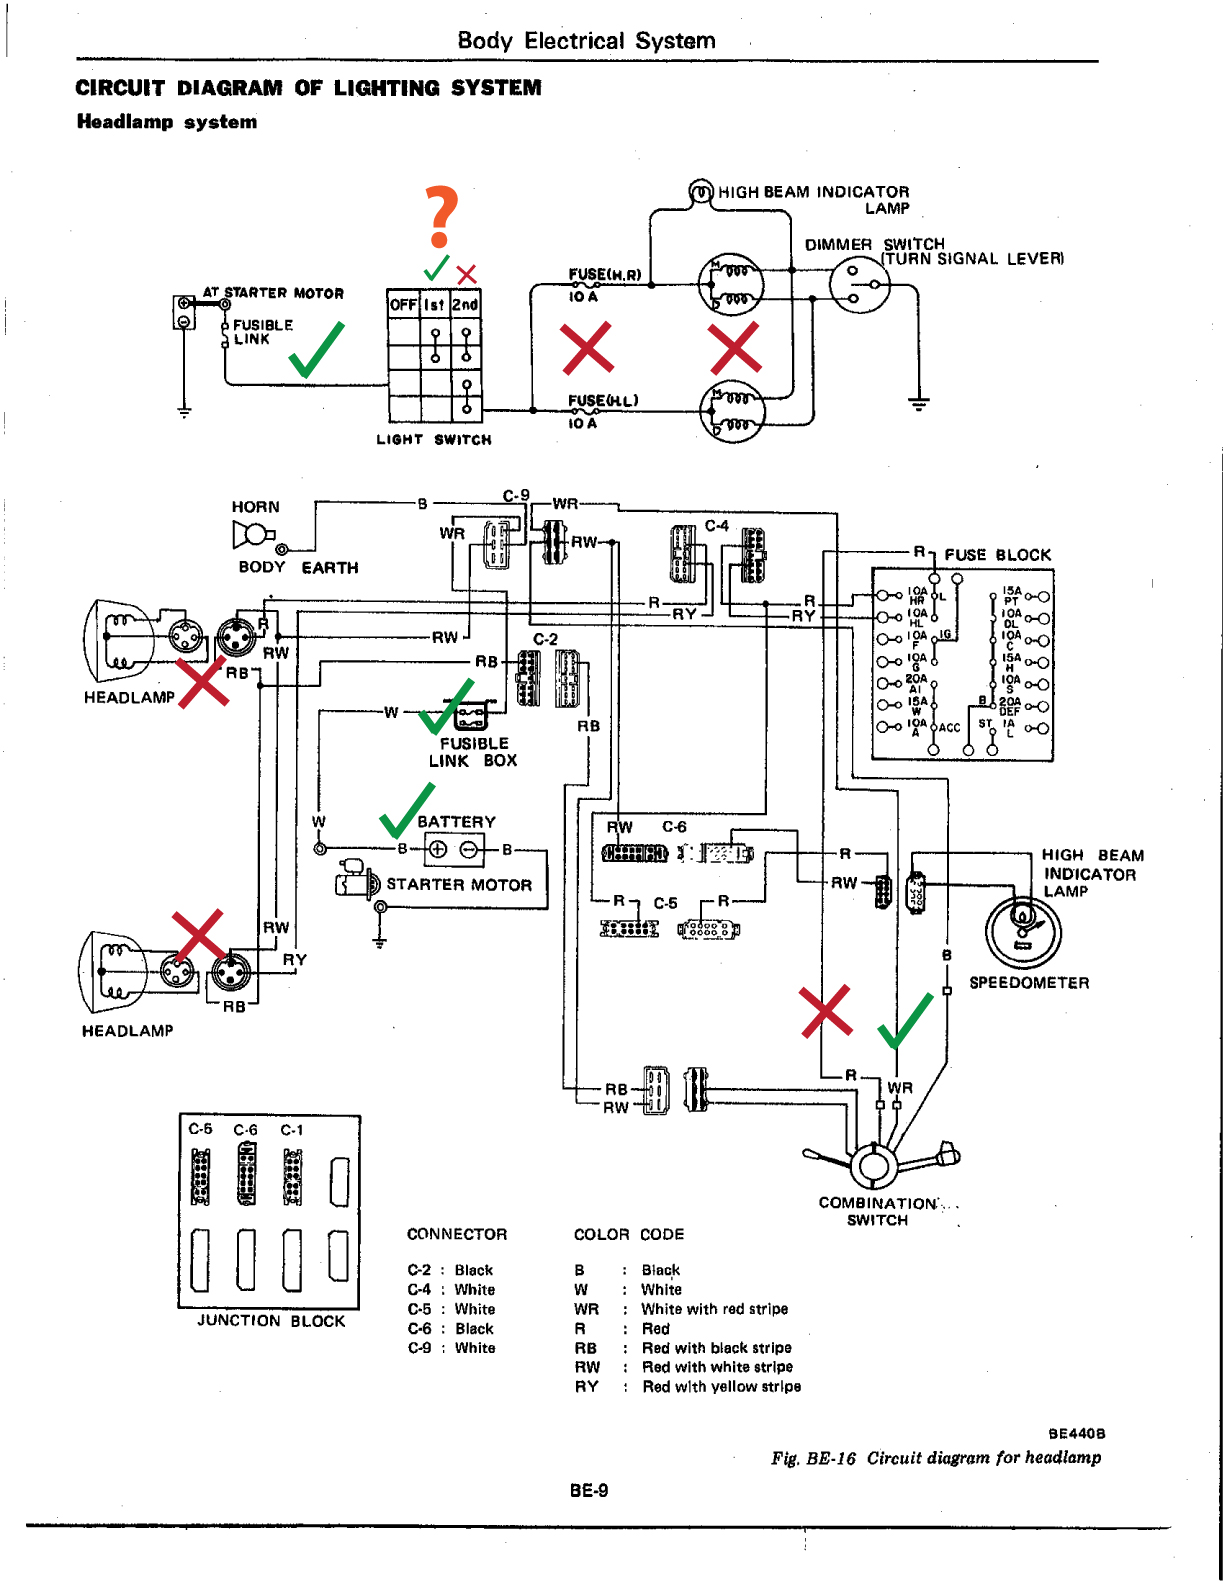 combination switch wiring diagram start stop headlights  the daily datsun